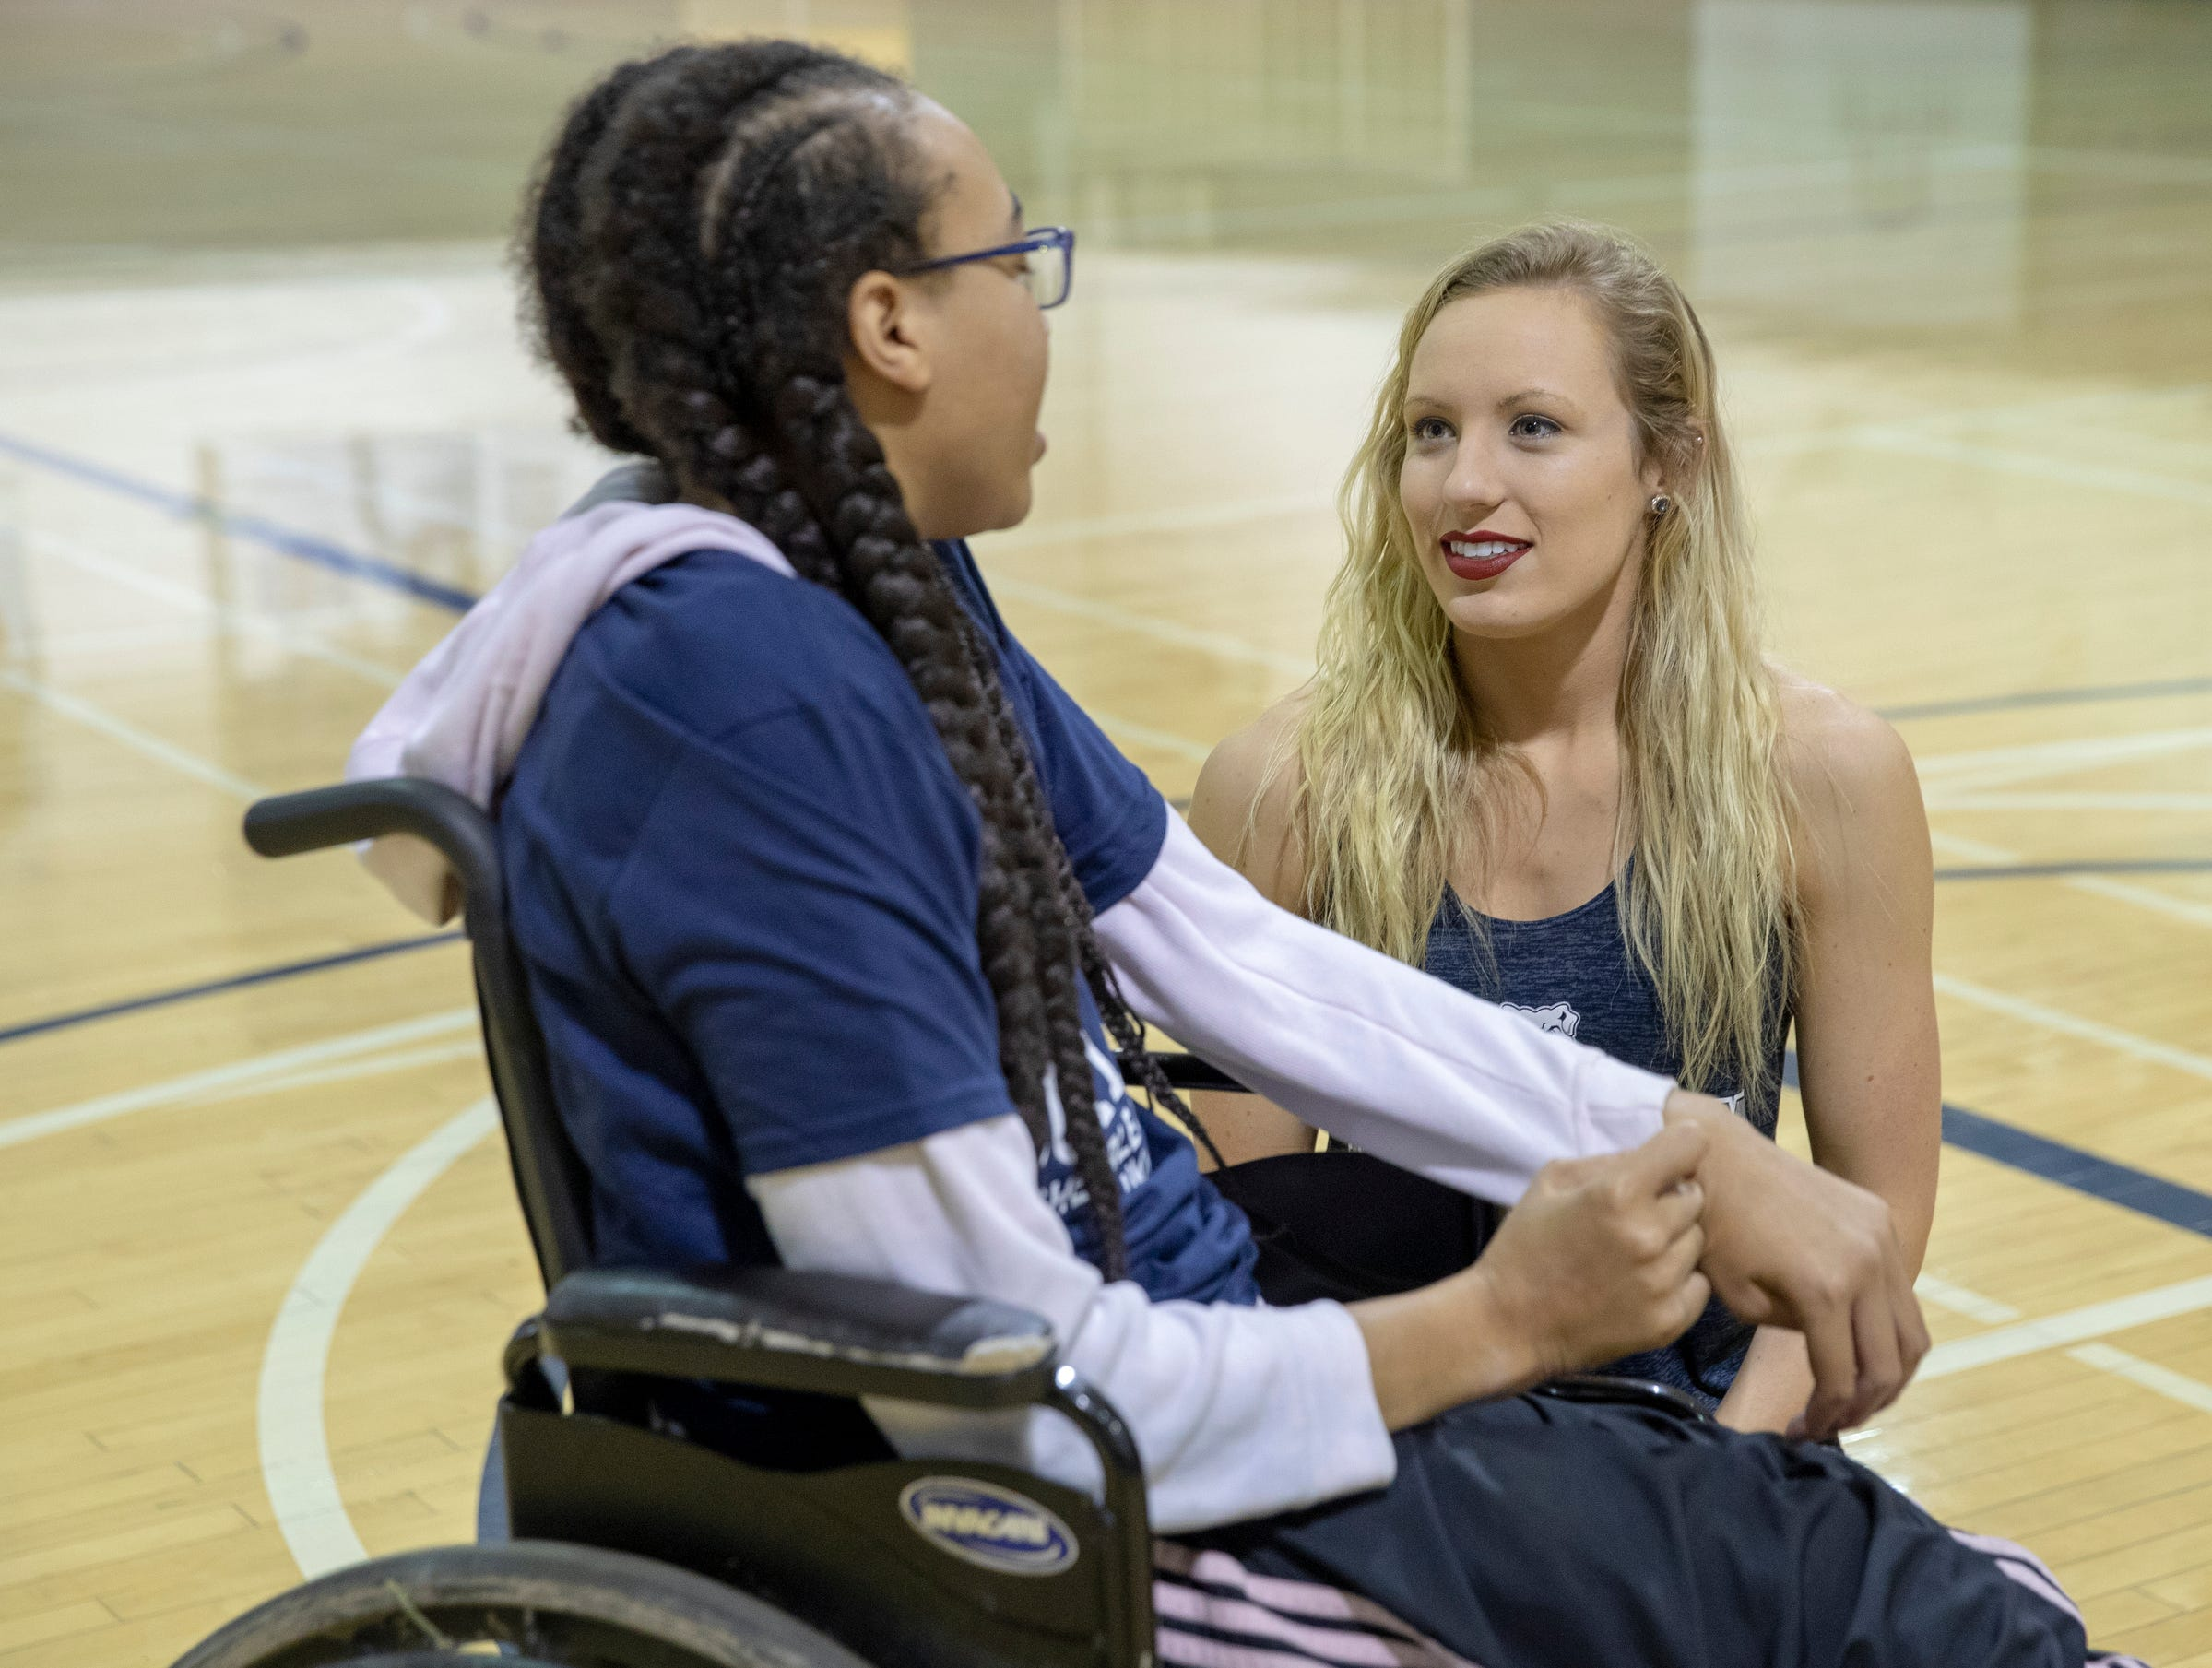 Kiara Lee (left), chats with Riley Banks, 19, a member of the Butler University dance team after learning a special halftime performance during the Butler women's basketball game at Hinkle Fieldhouse, Indianapolis, Sunday, Dec. 2, 2018. Butler cheer and dance groups paired up with physical therapy students from Indiana University to teach young people with special needs a routine in preparation for a special performance during the afternoon's halftime show.